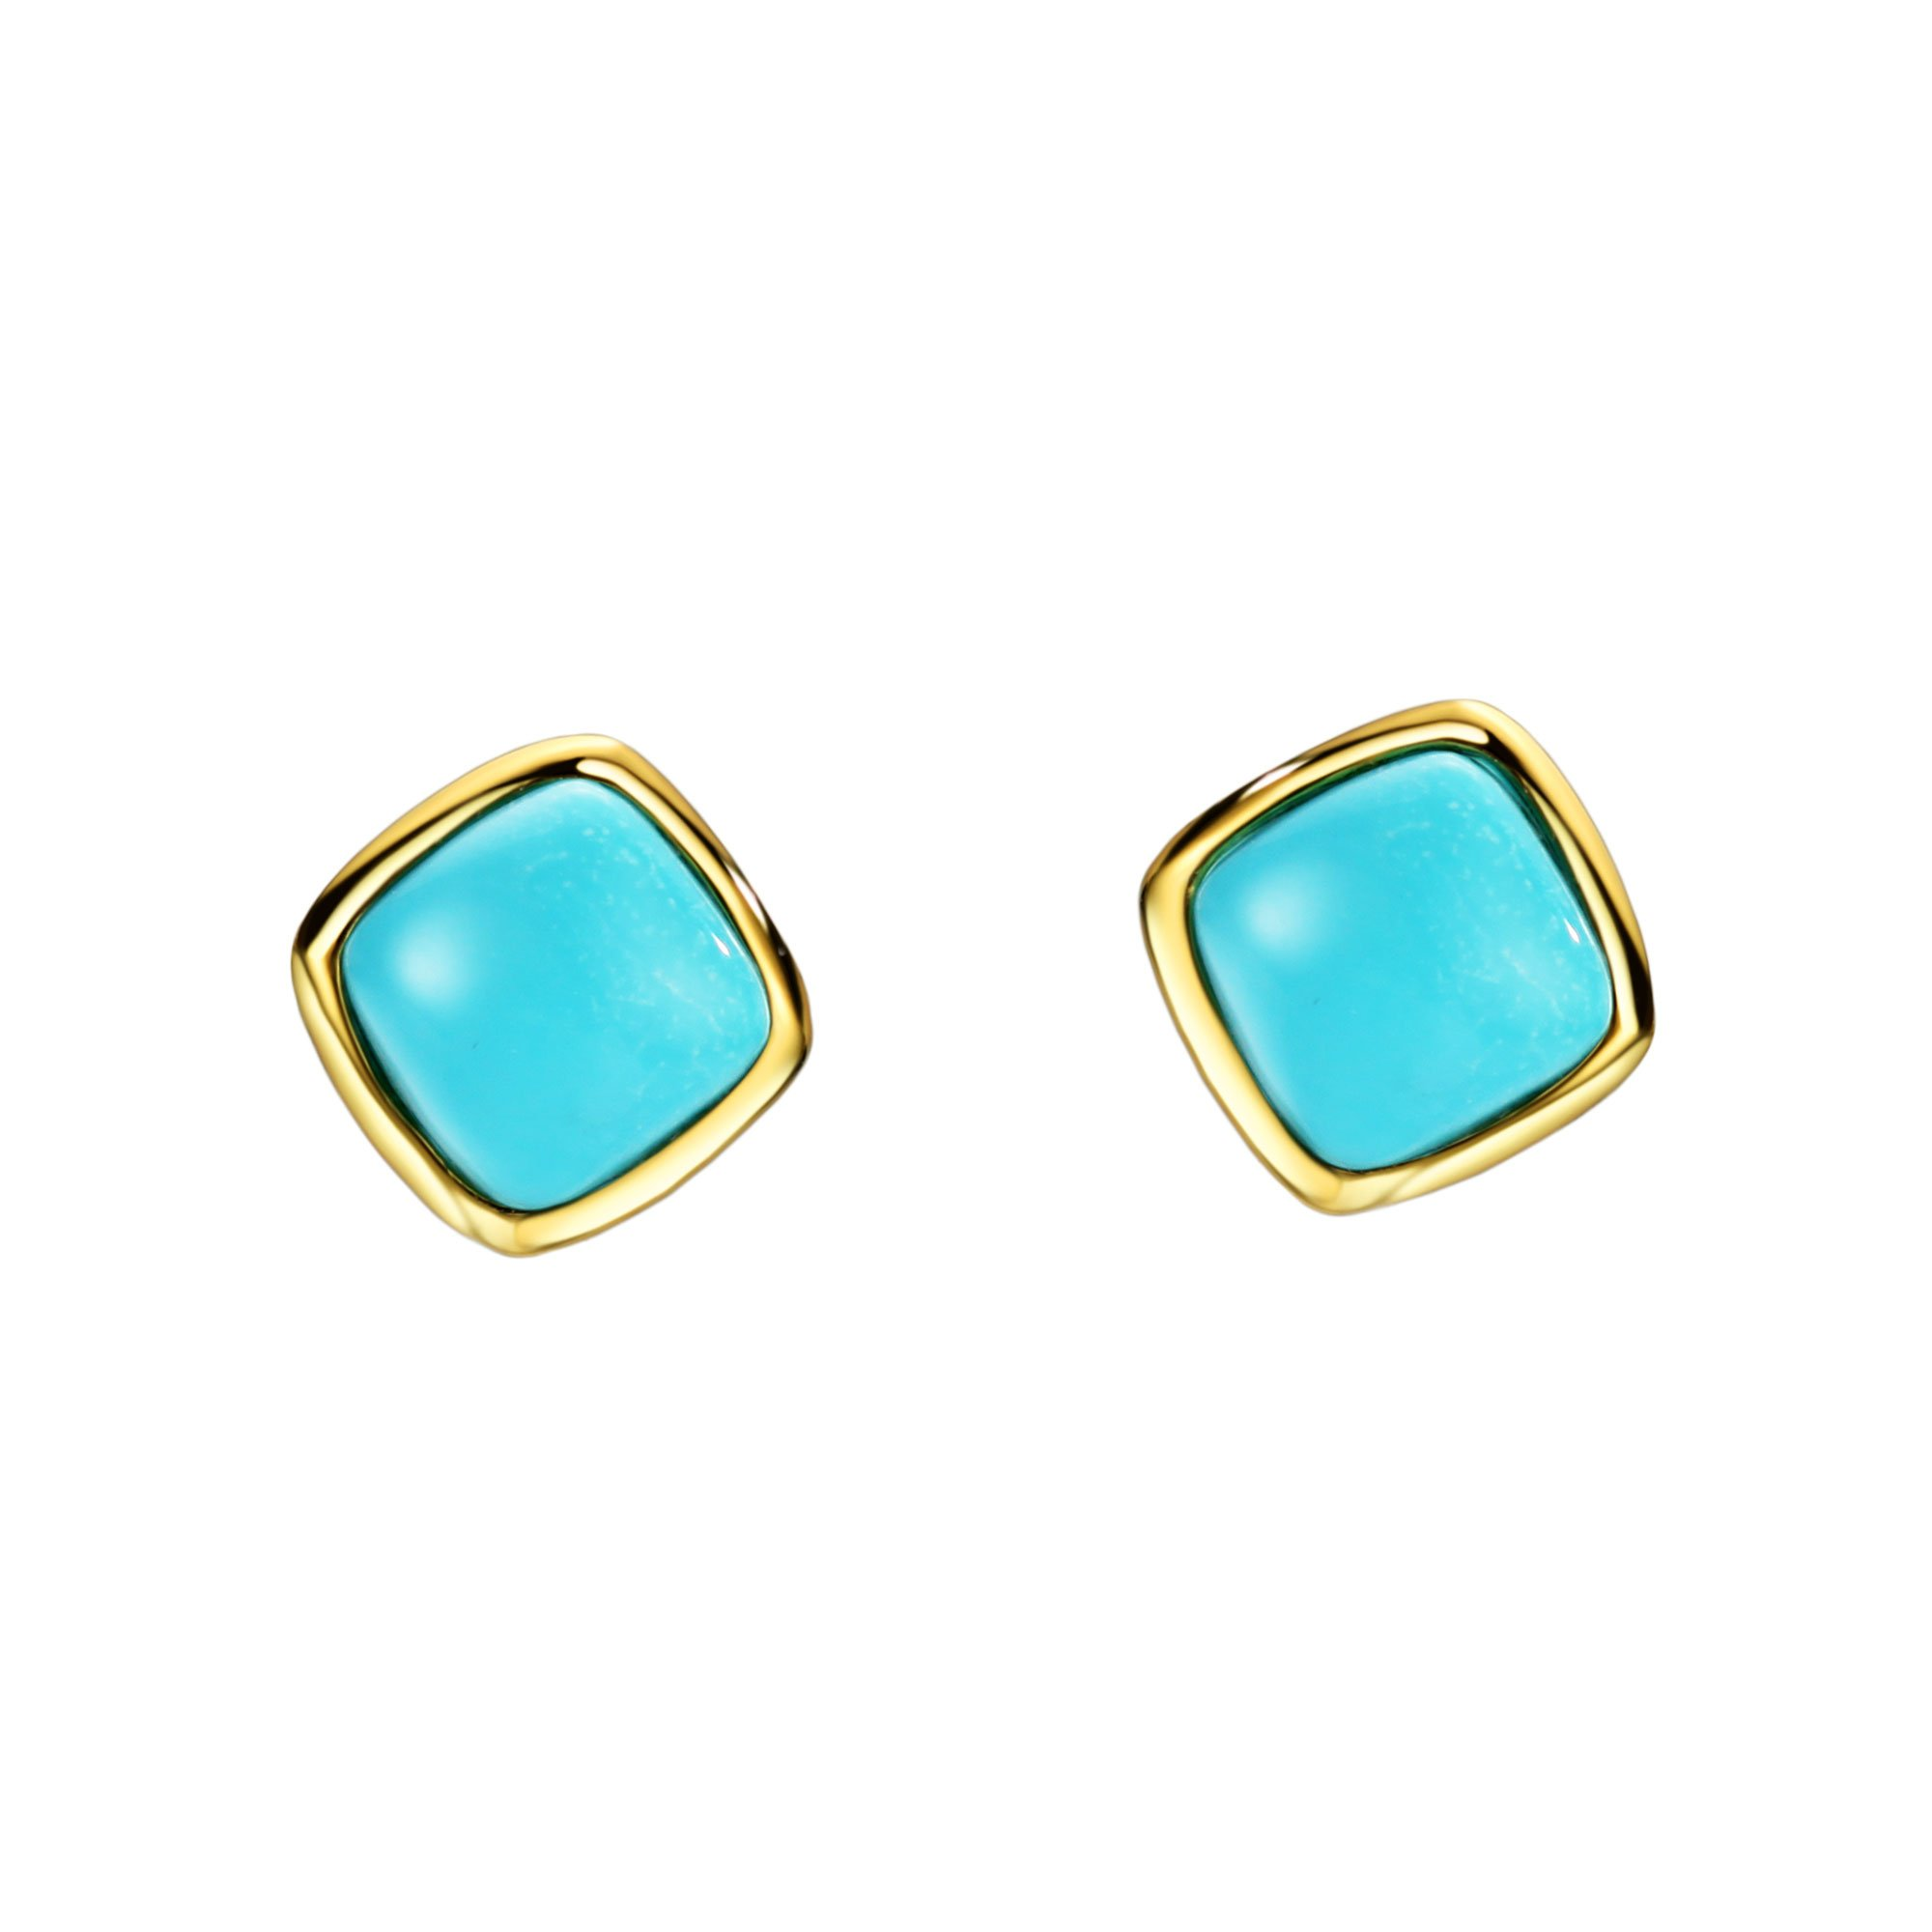 Sterling Silver Natural Turquoise Earrings Stud 18K gold plated Cushion Cut Gemstone Women Fine Jewelry